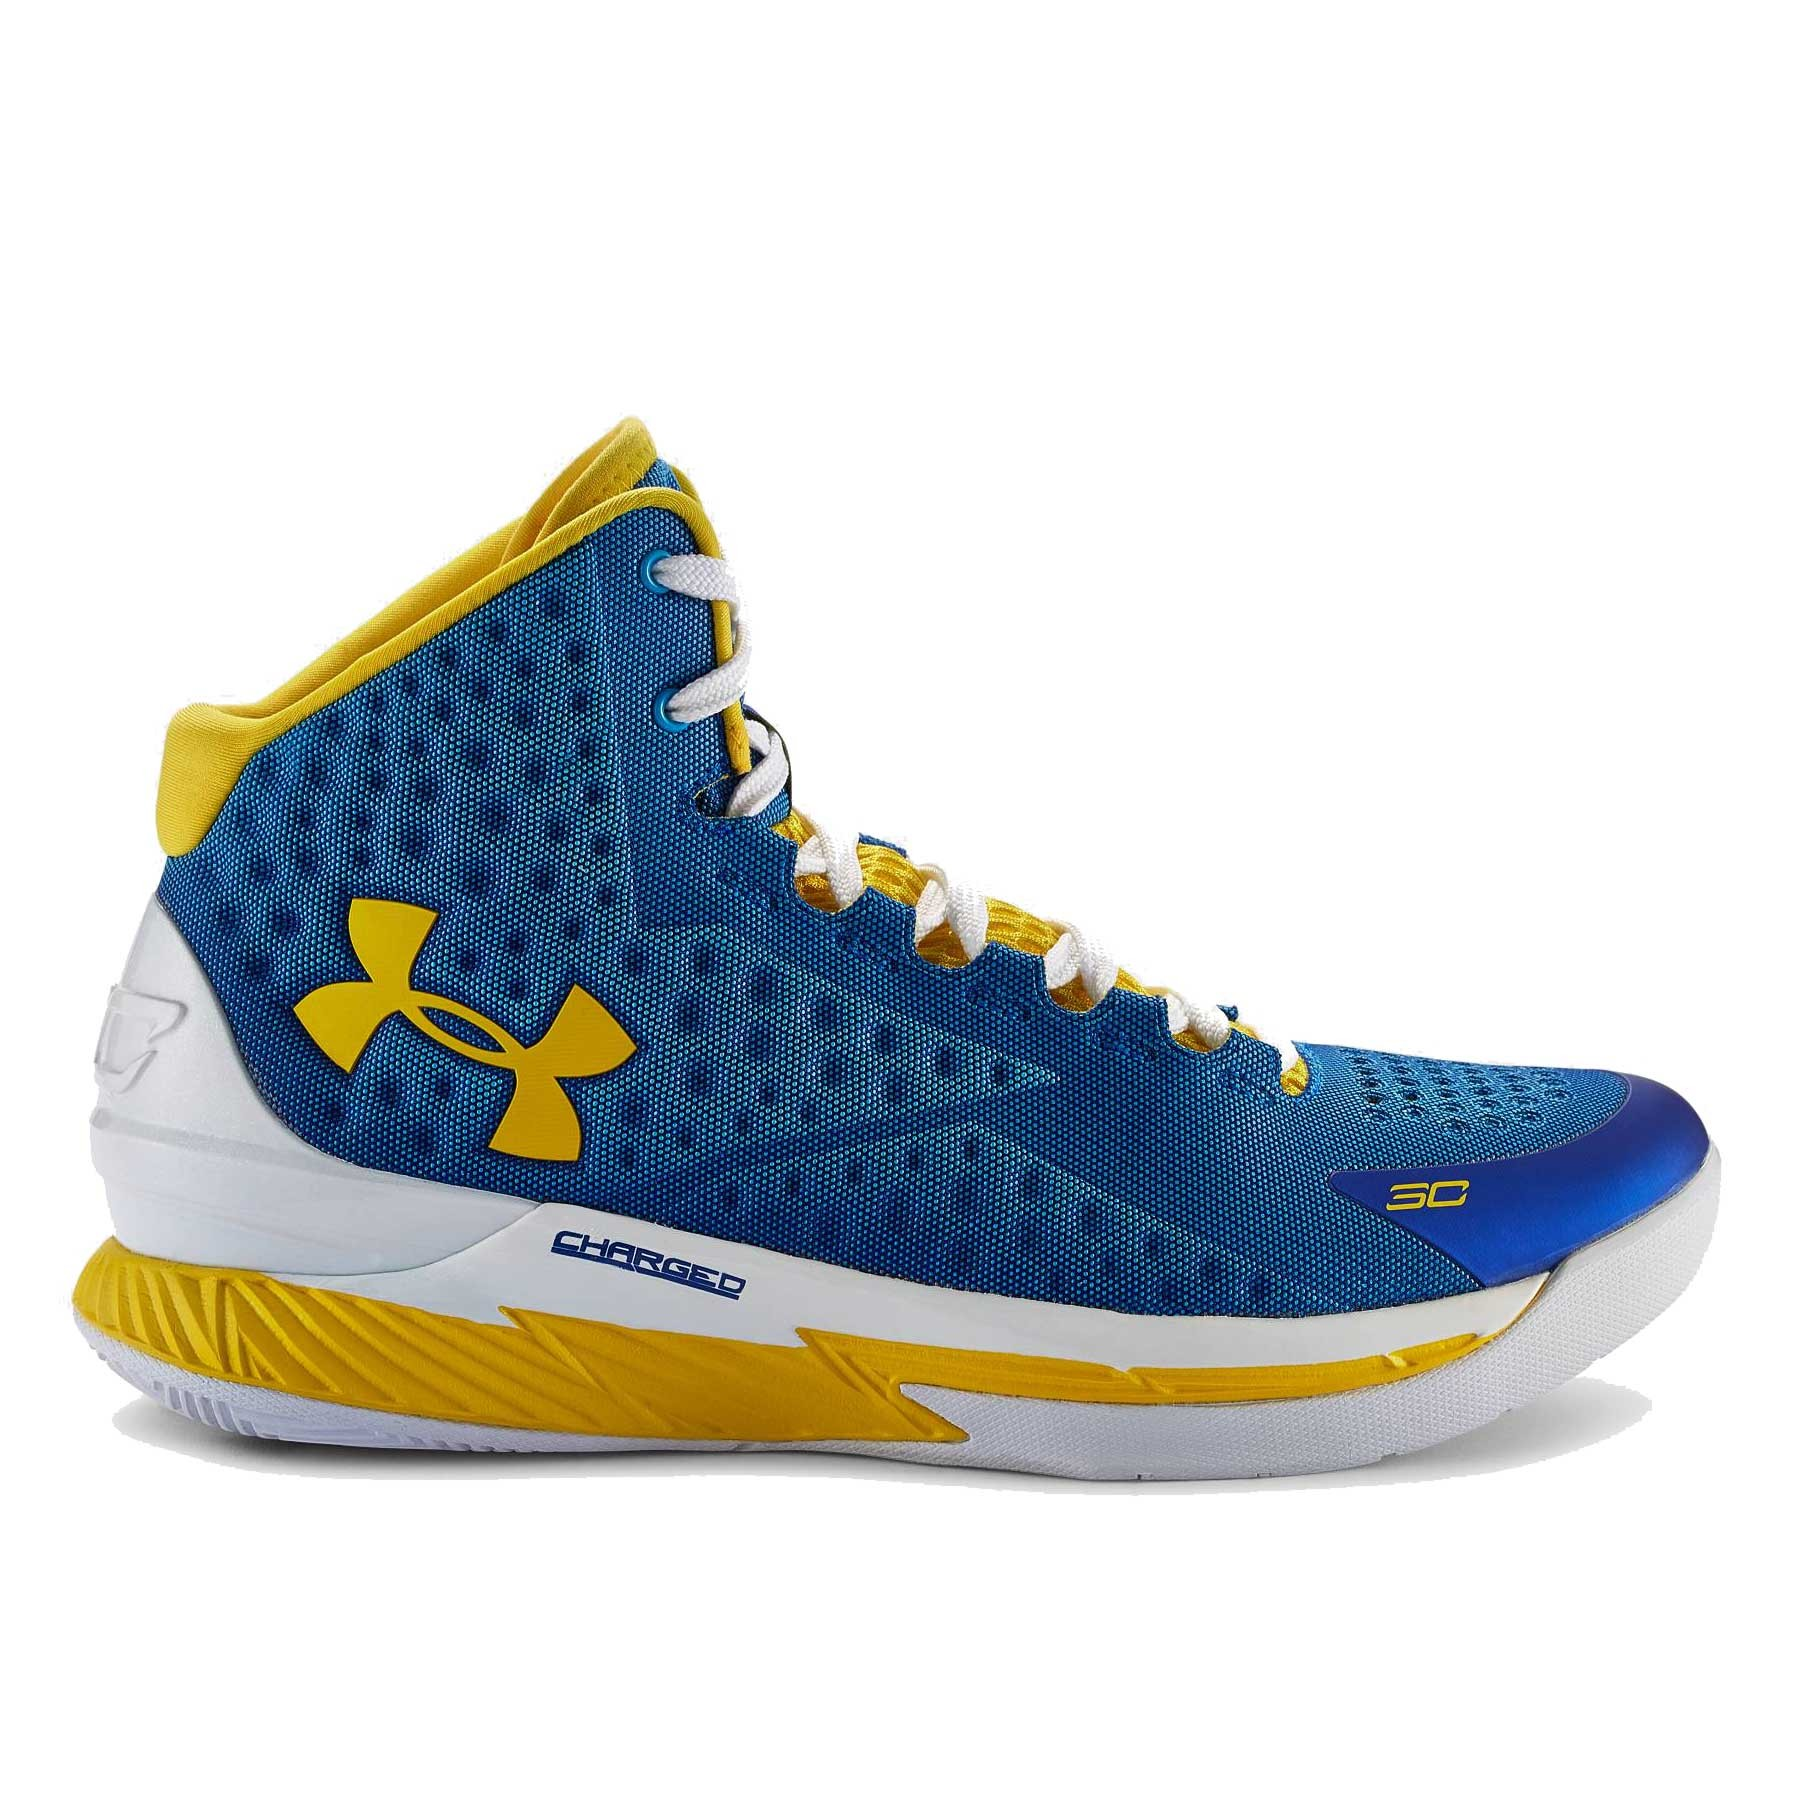 under armour curry one le scarpe basket per chi non si ferma mai in esclusiva su. Black Bedroom Furniture Sets. Home Design Ideas